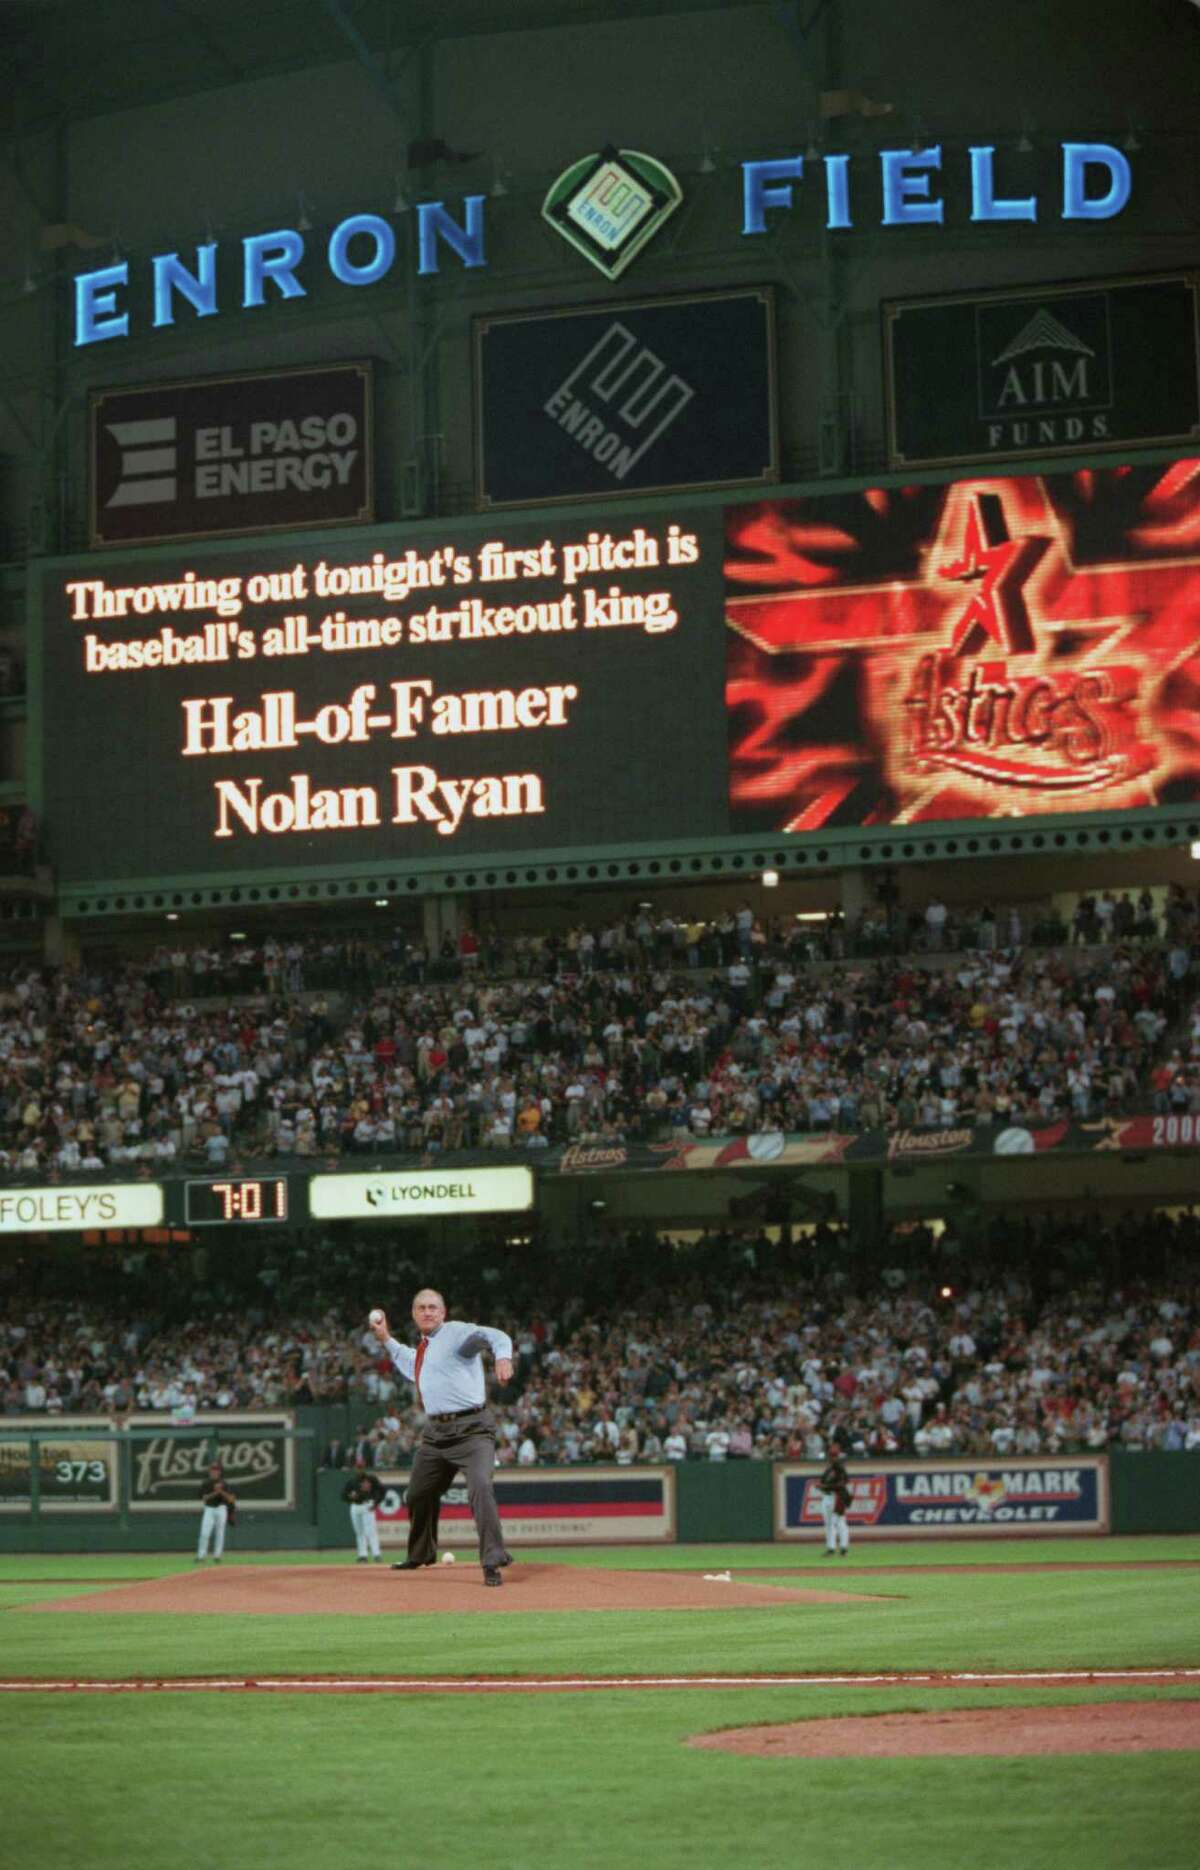 Hall of Famer,and former Astro, Nolan Ryan hurls the first pitch prior to the start of the inaugural game between the Astros and Yankees at Enron Field 3/30/2000. Chronicle/Smiley N. Pool.